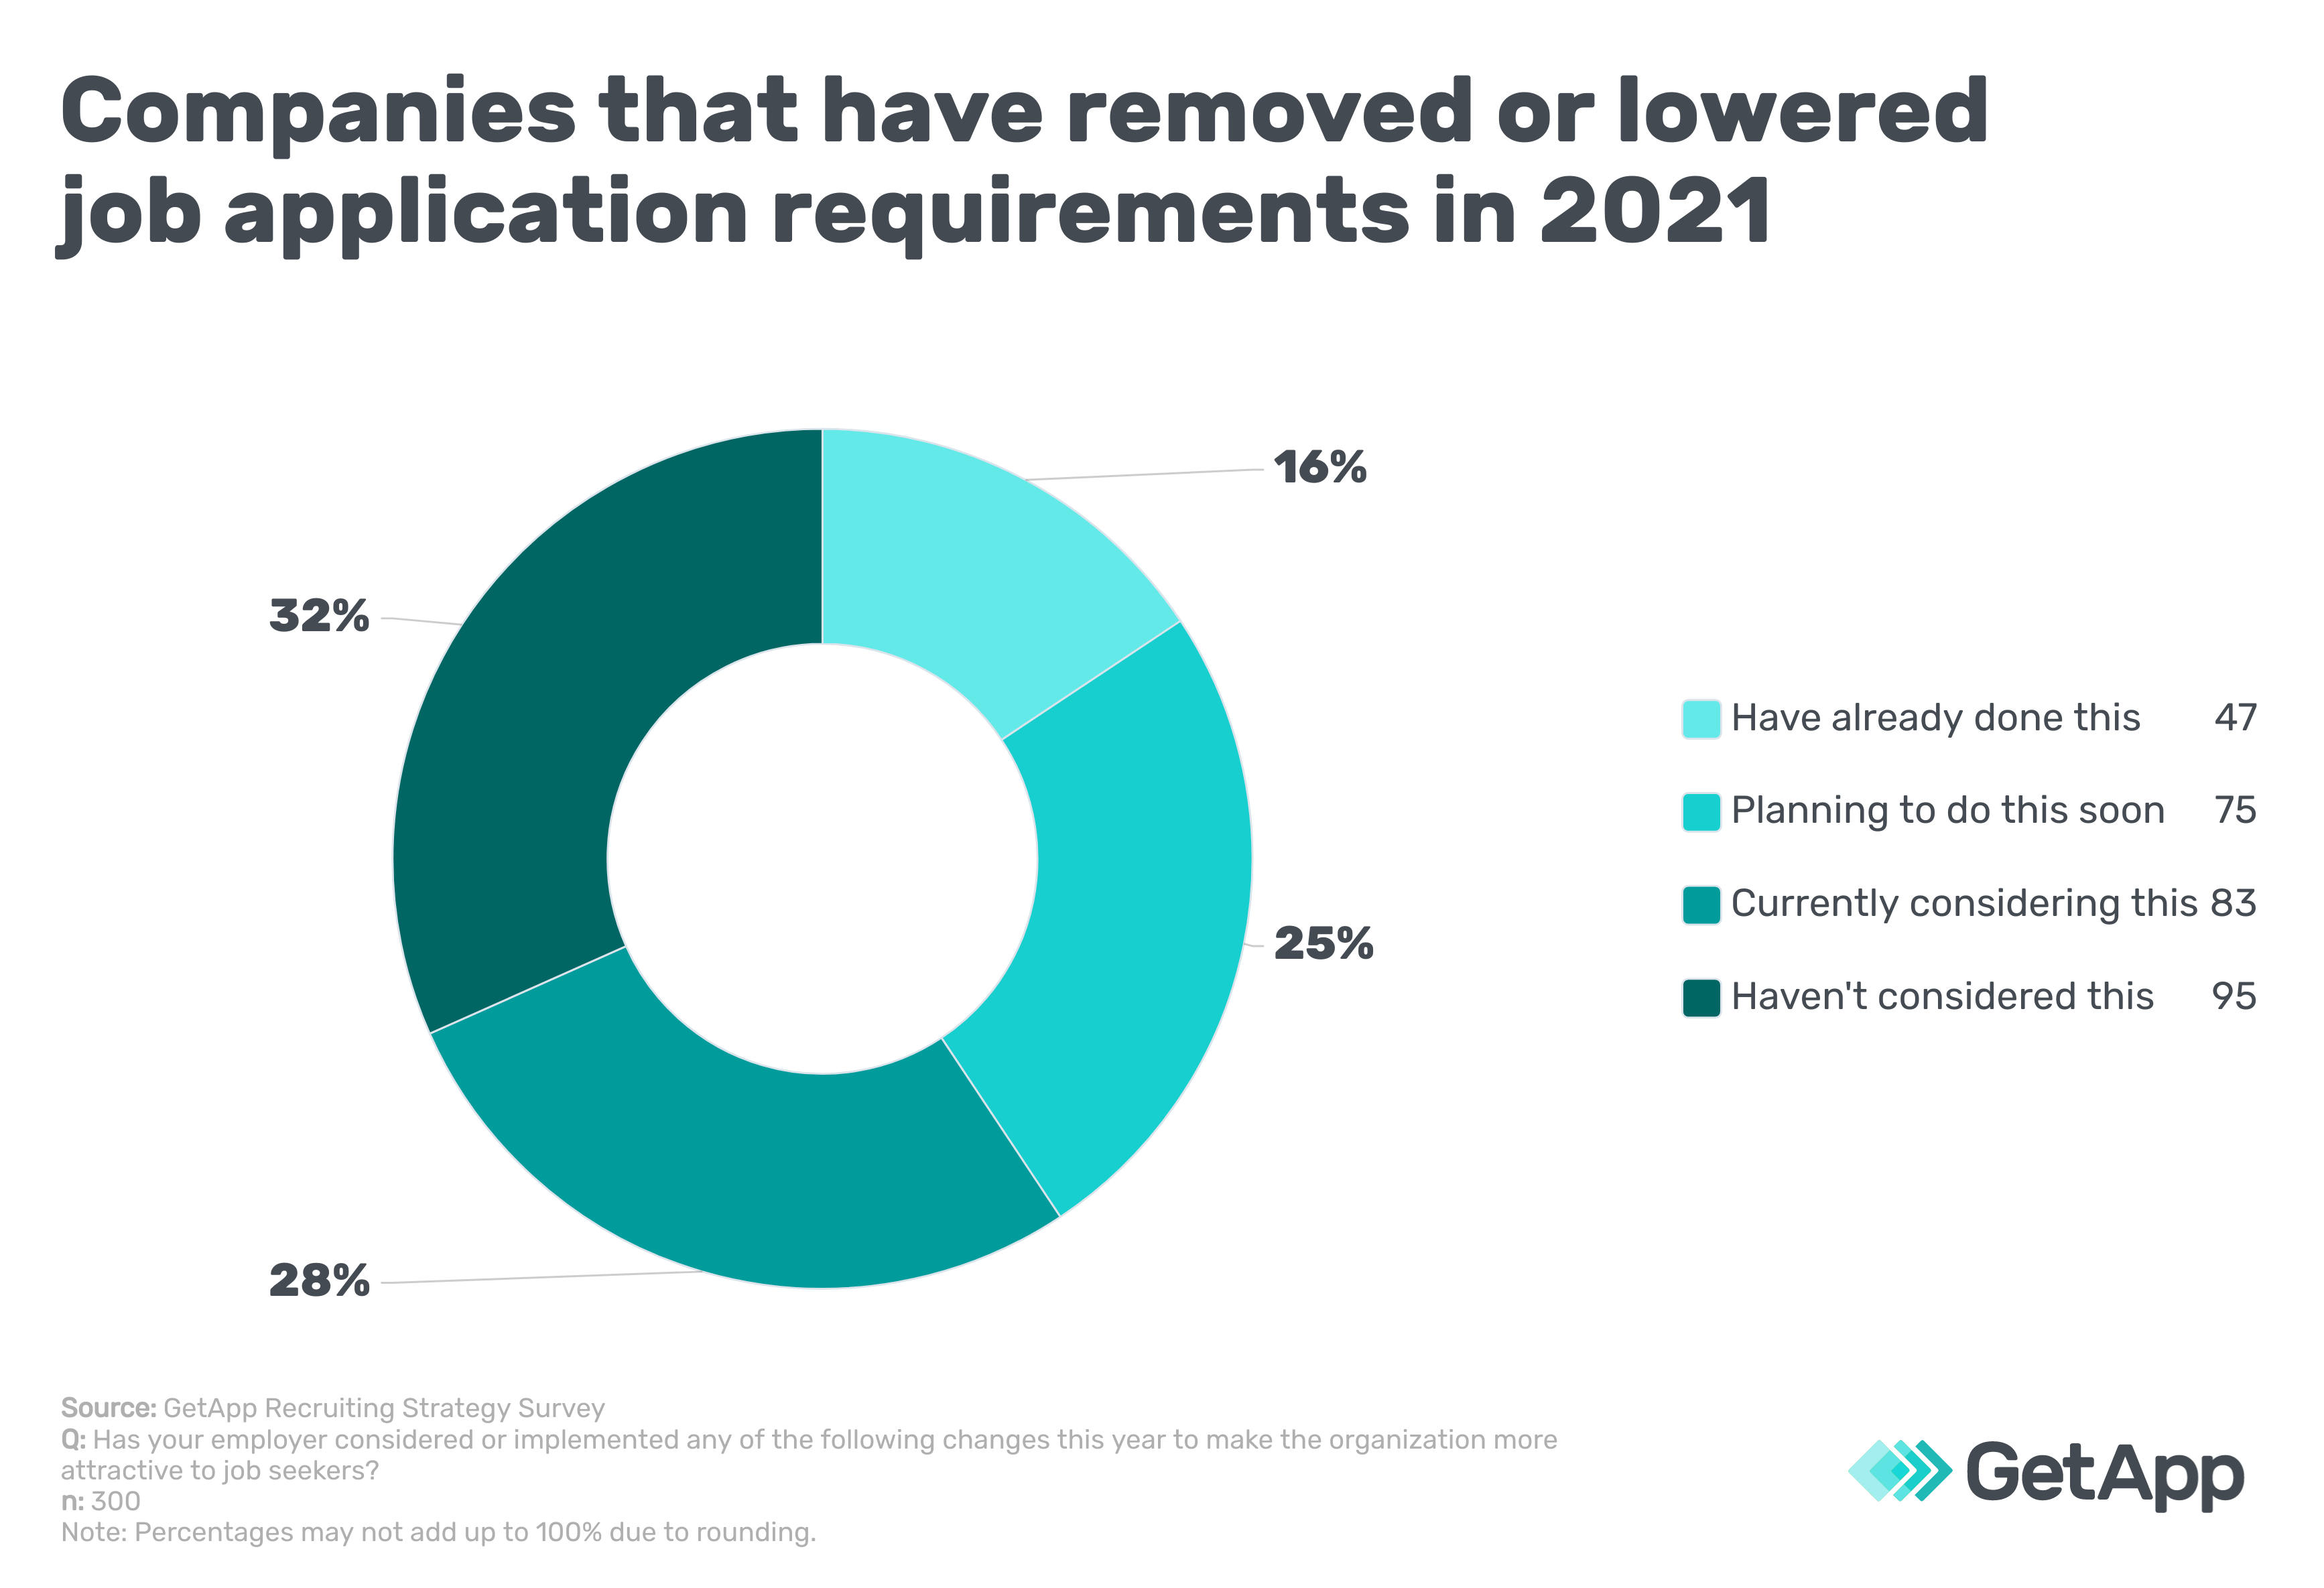 Companies that have removed or lowered job application requirements in 2021